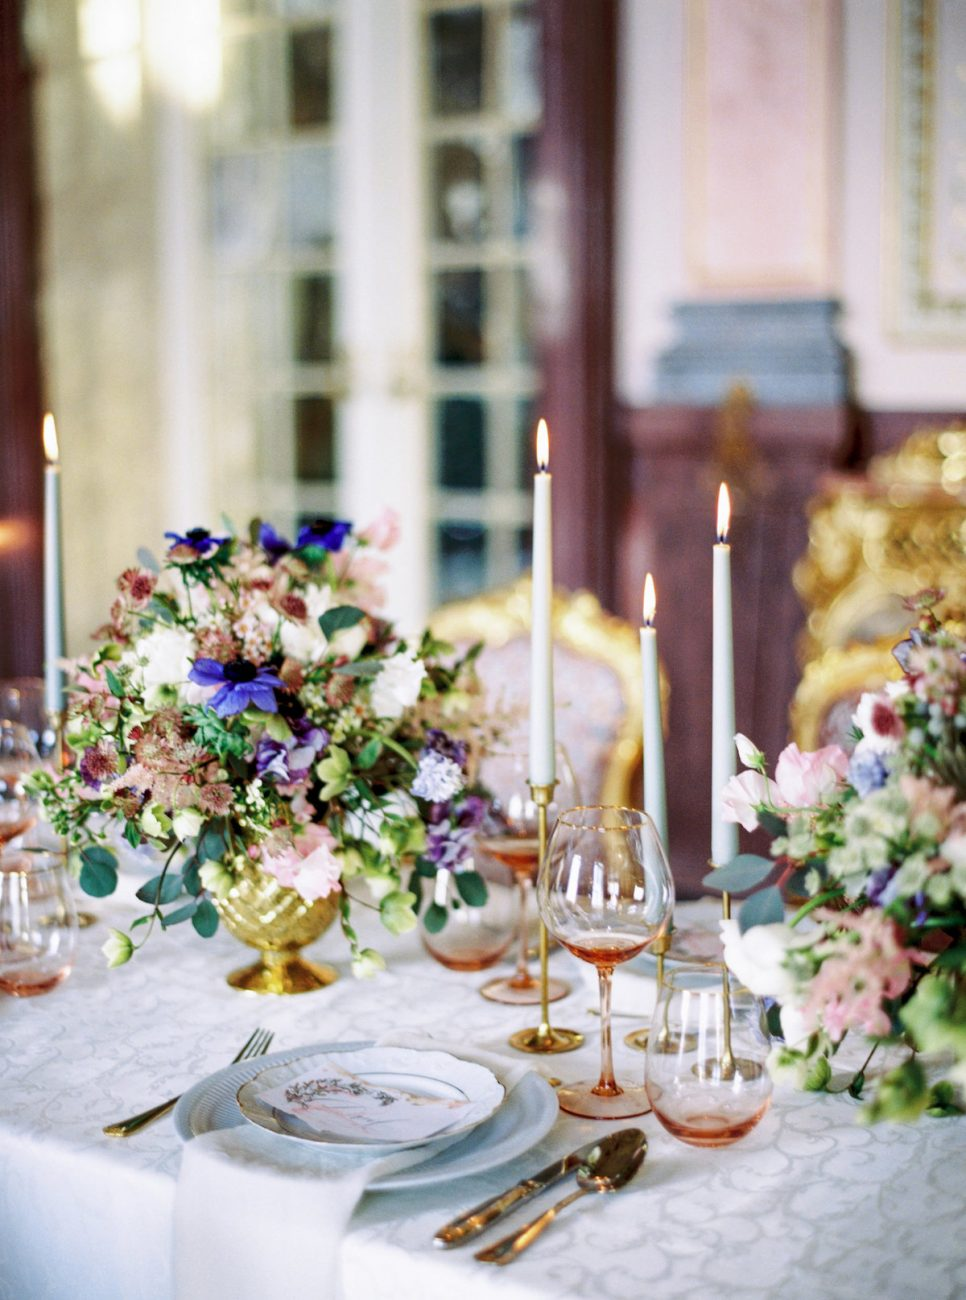 Palace Wedding Inspiration - luxury place names on table setting